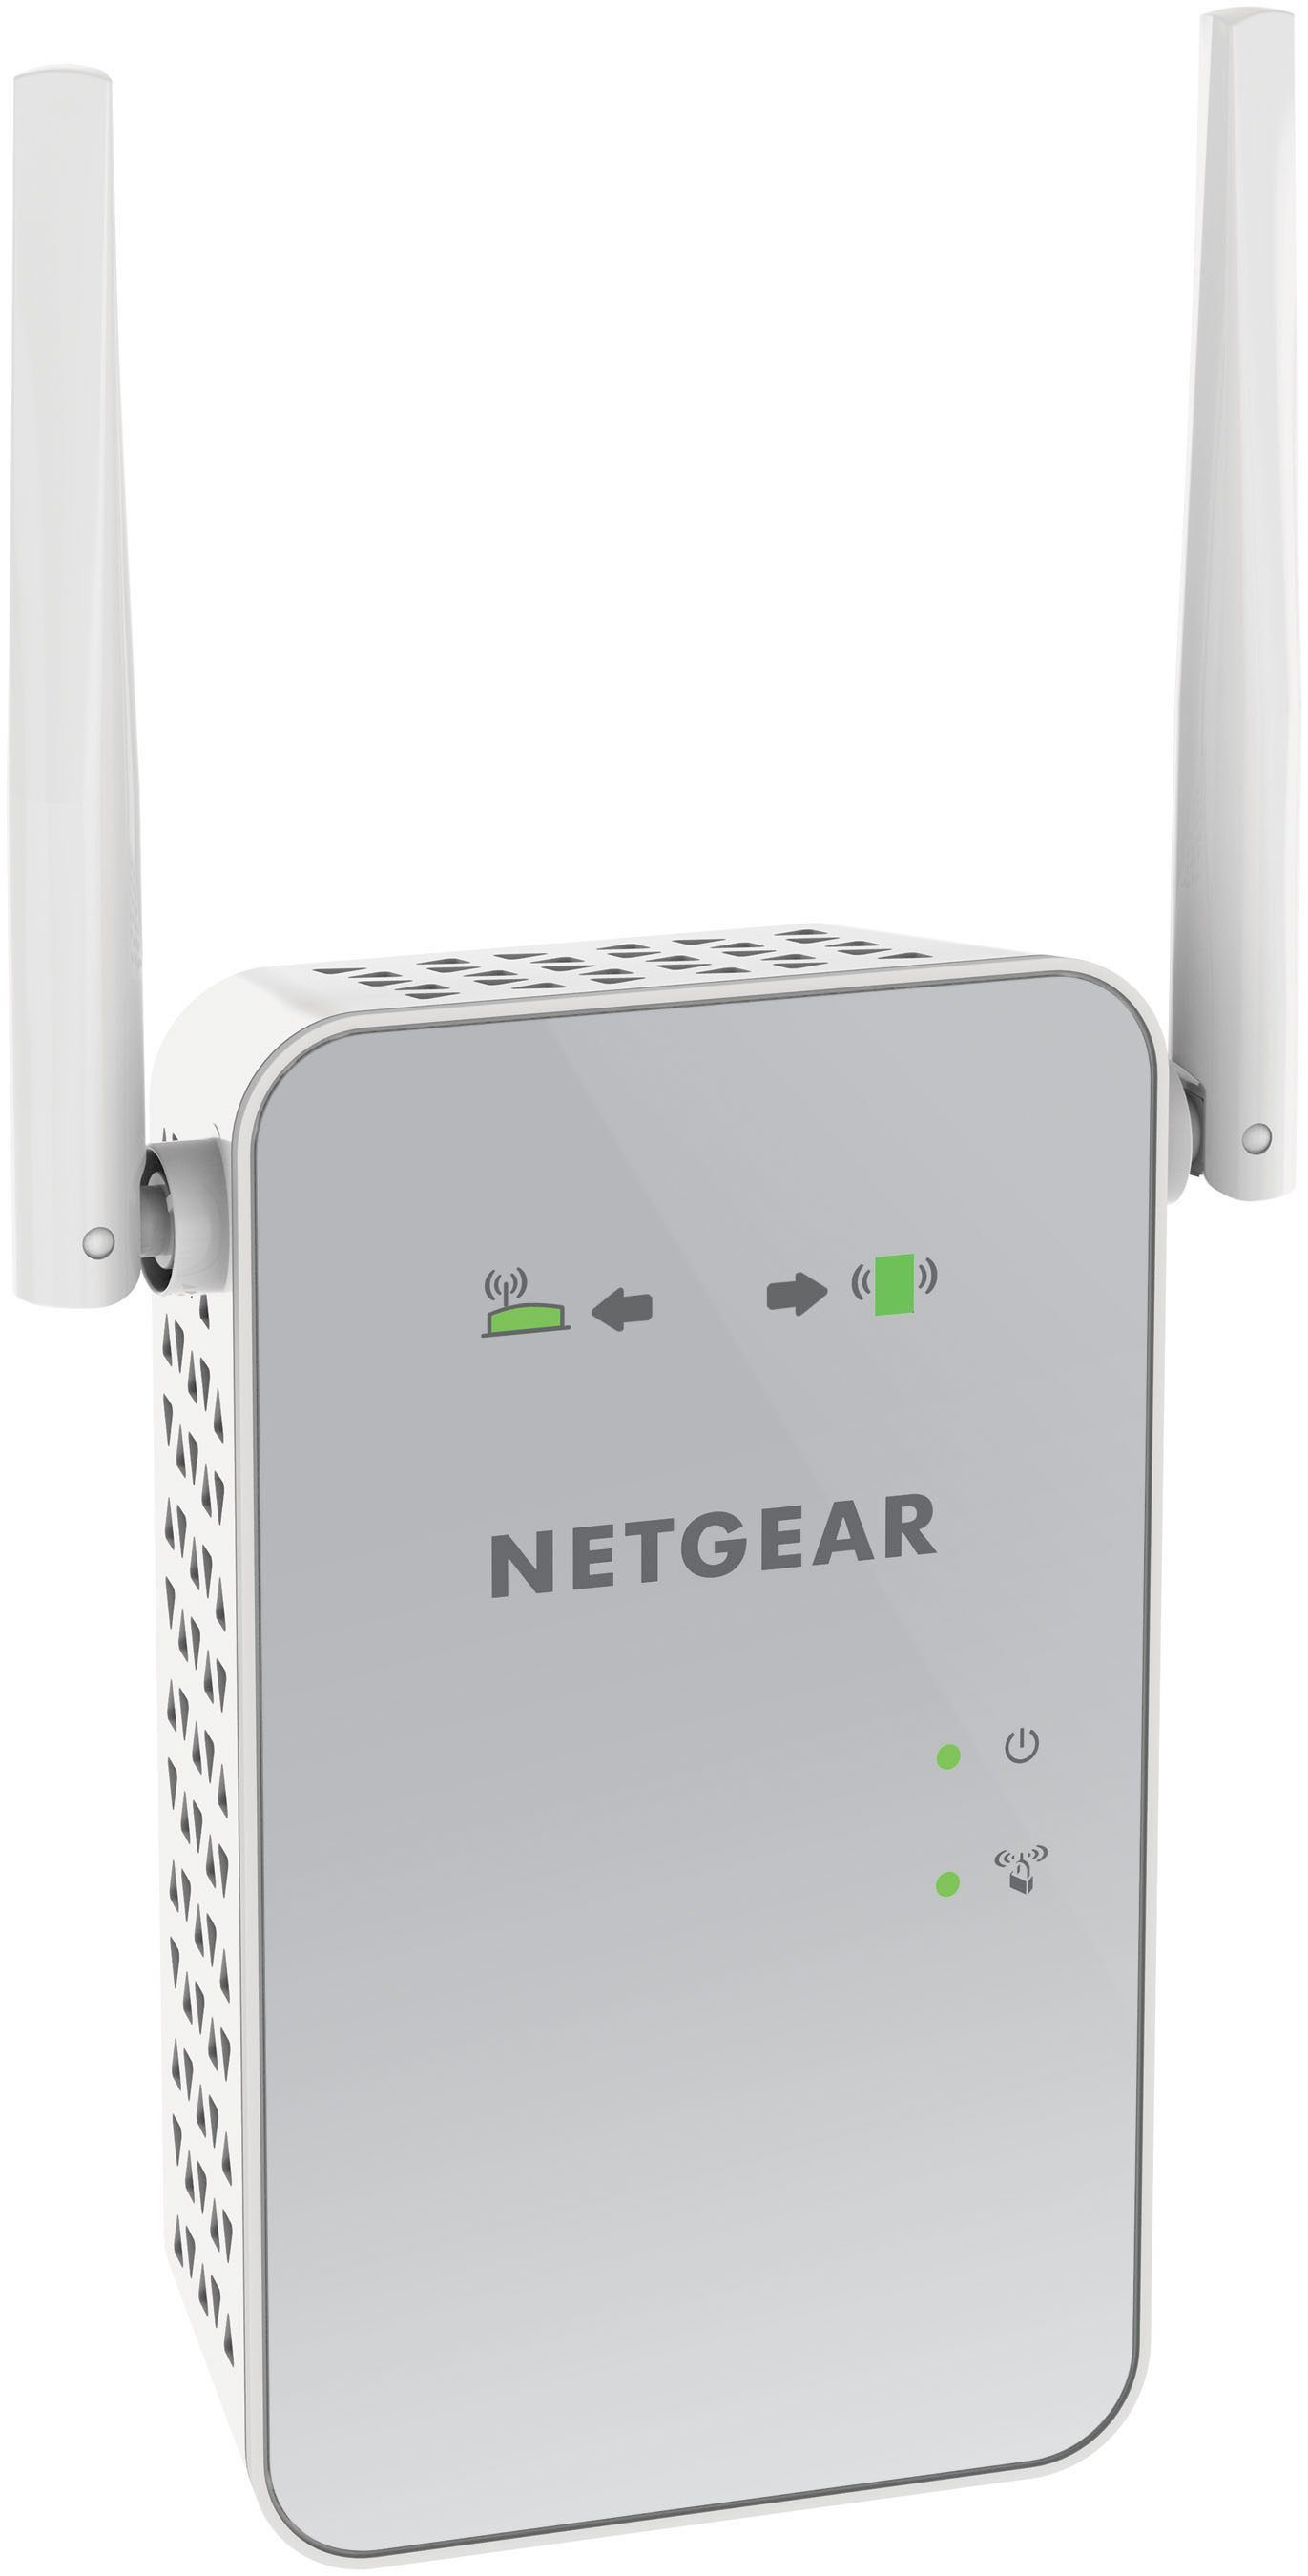 Netgear Access Point Hardware »AC1200 WLAN RANGEEXTENDER«